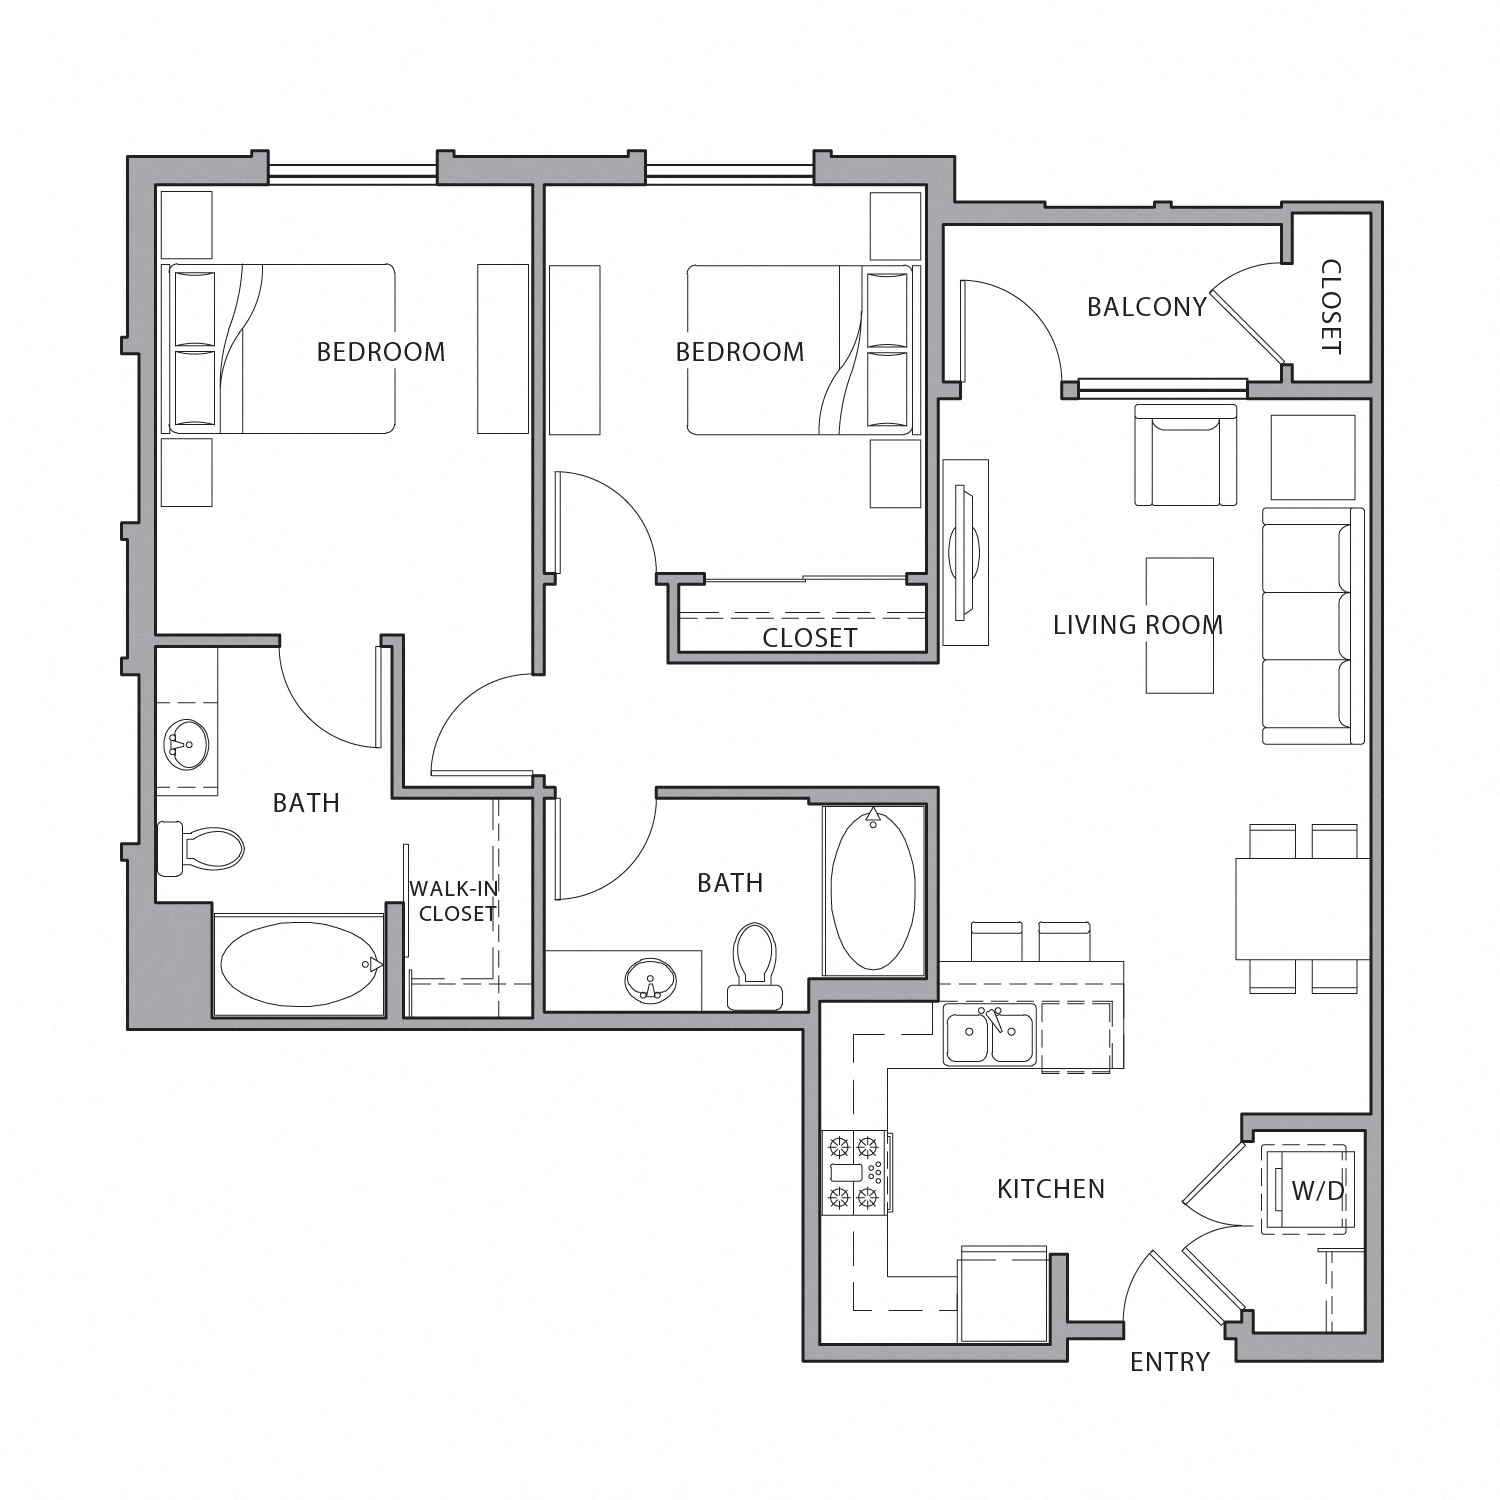 Floor plan diagram. Two bedrooms, two bathrooms, an open kitchen and living area, and a balcony.